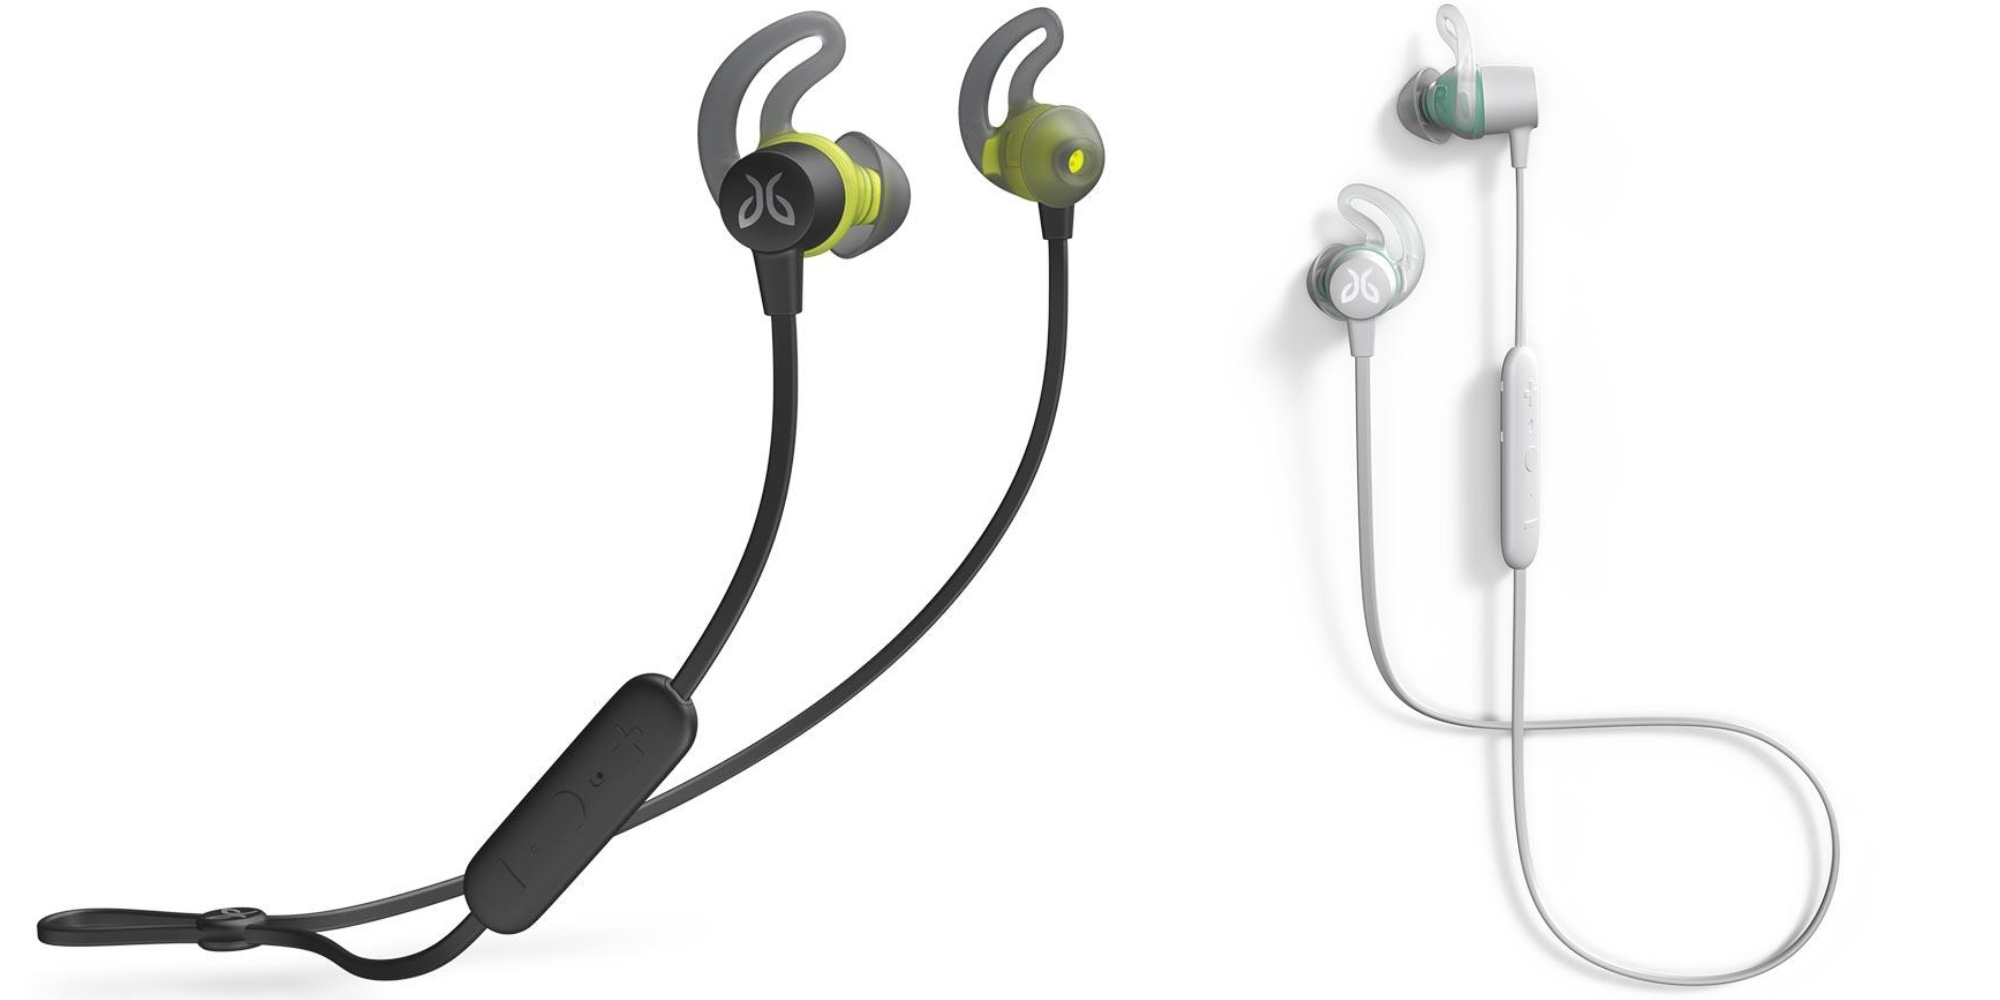 Jaybird's Tarah Bluetooth Sport Earbuds feature IPX7 water resistance, more at $80 (20% off)